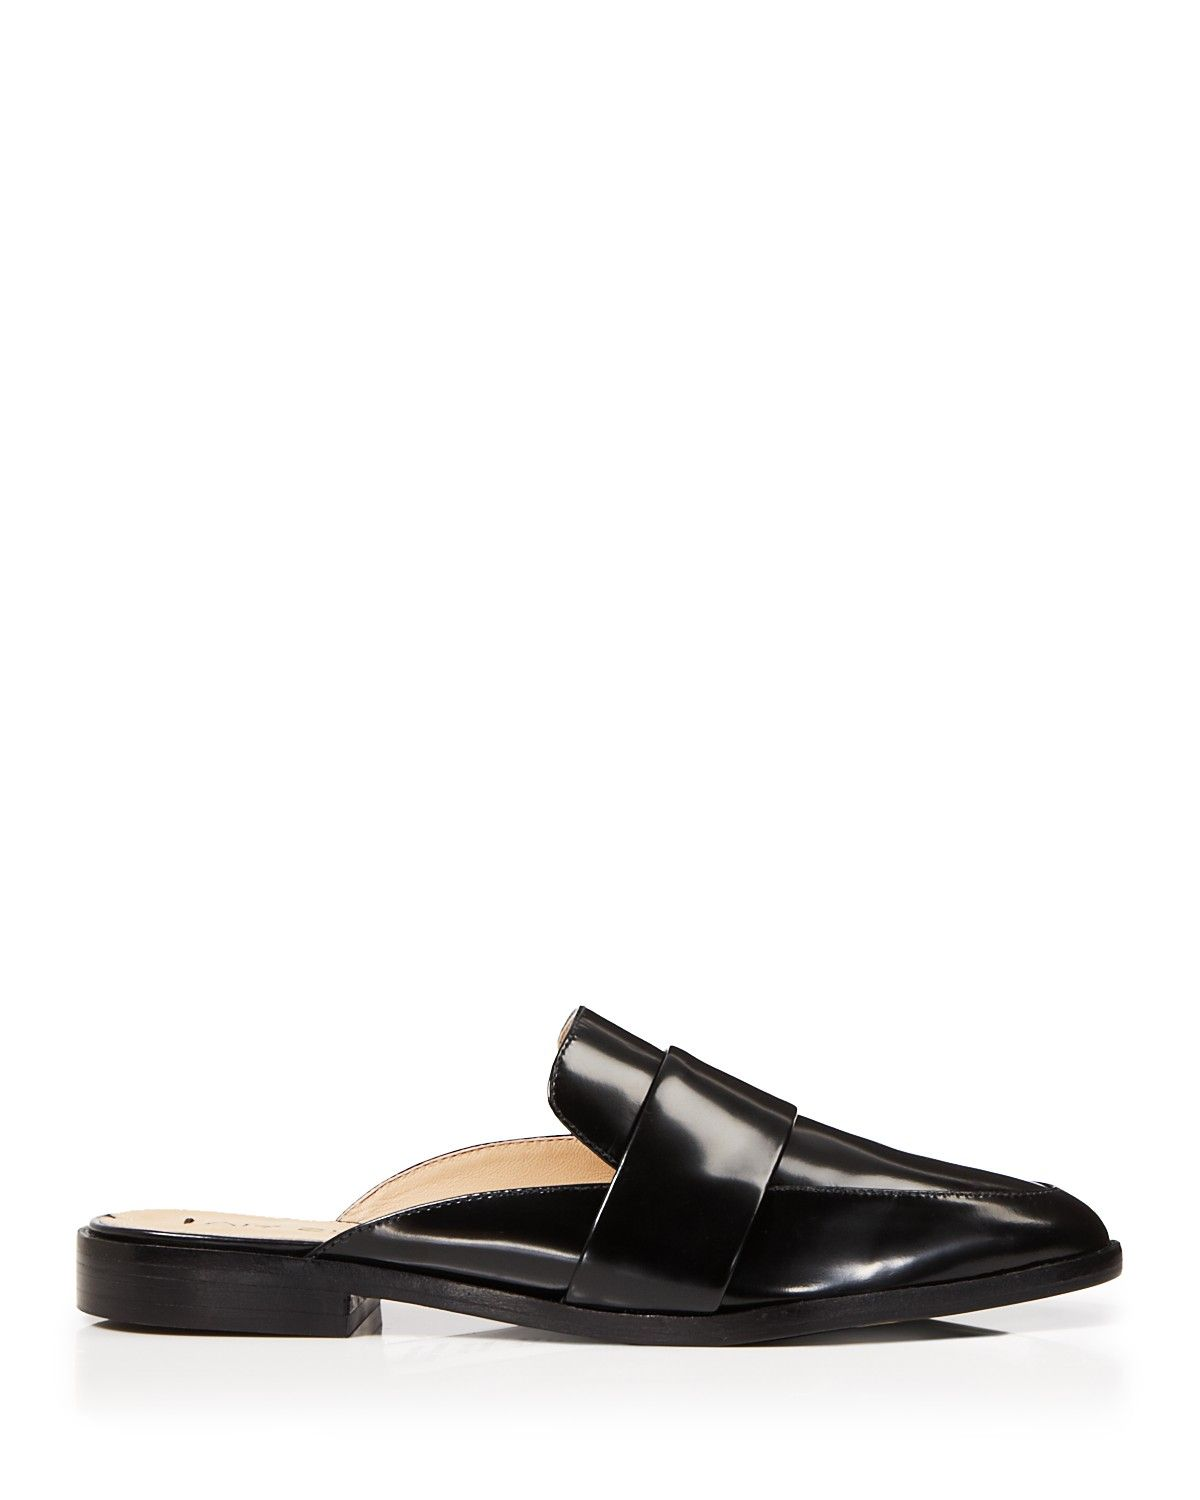 fc2feda868e3 Via Spiga Oxford Flats - Lauryn Slide